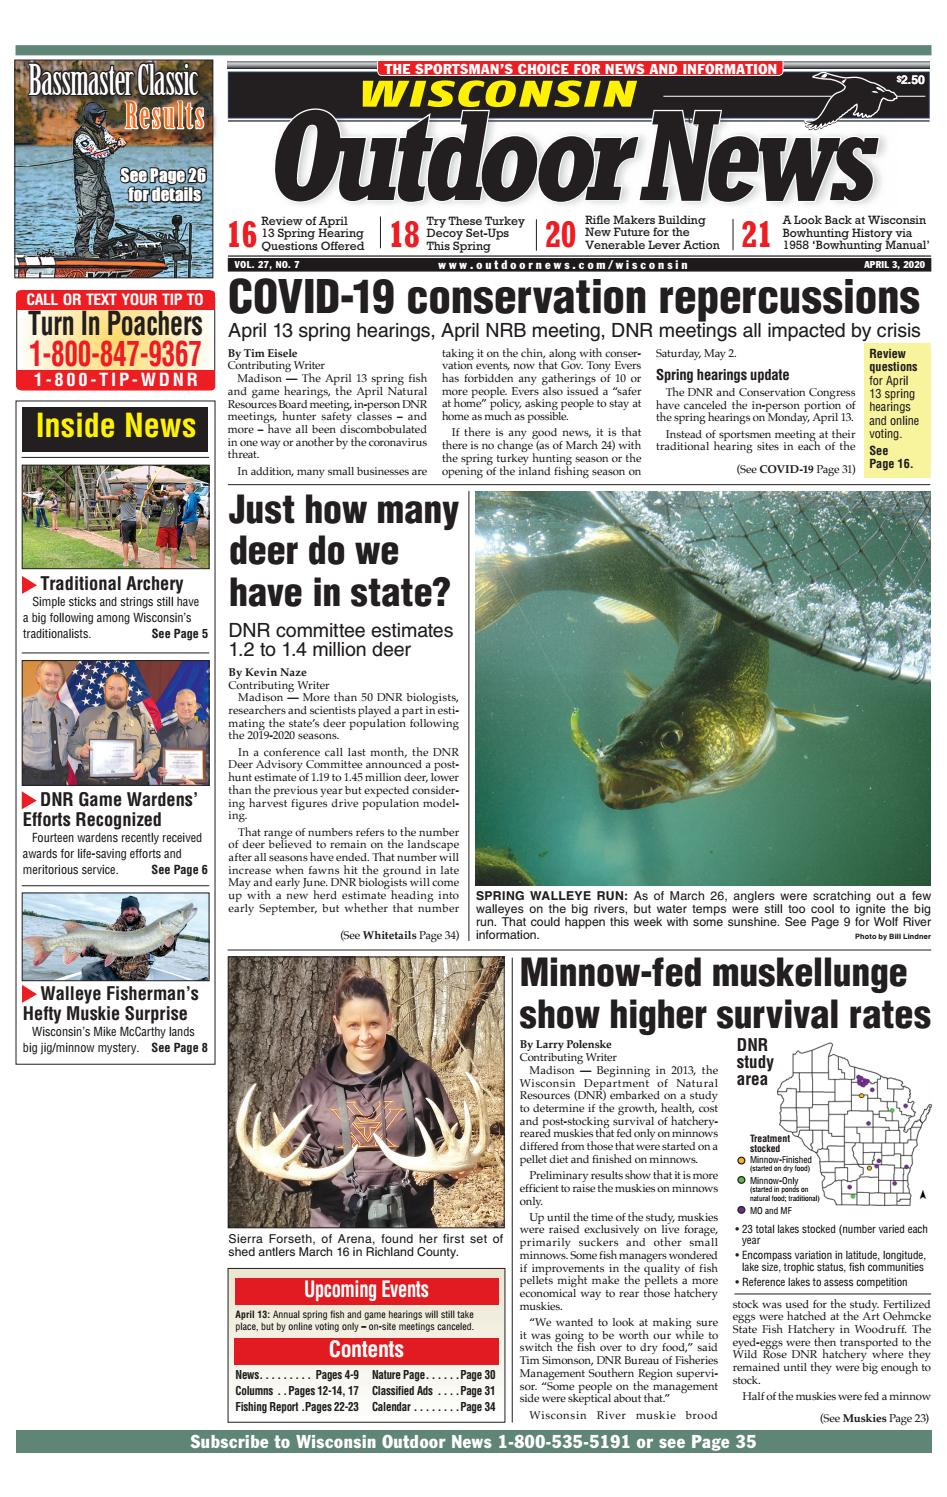 Wisconsin Outdoor News Issue 7 2020 By Outdoor News Issuu